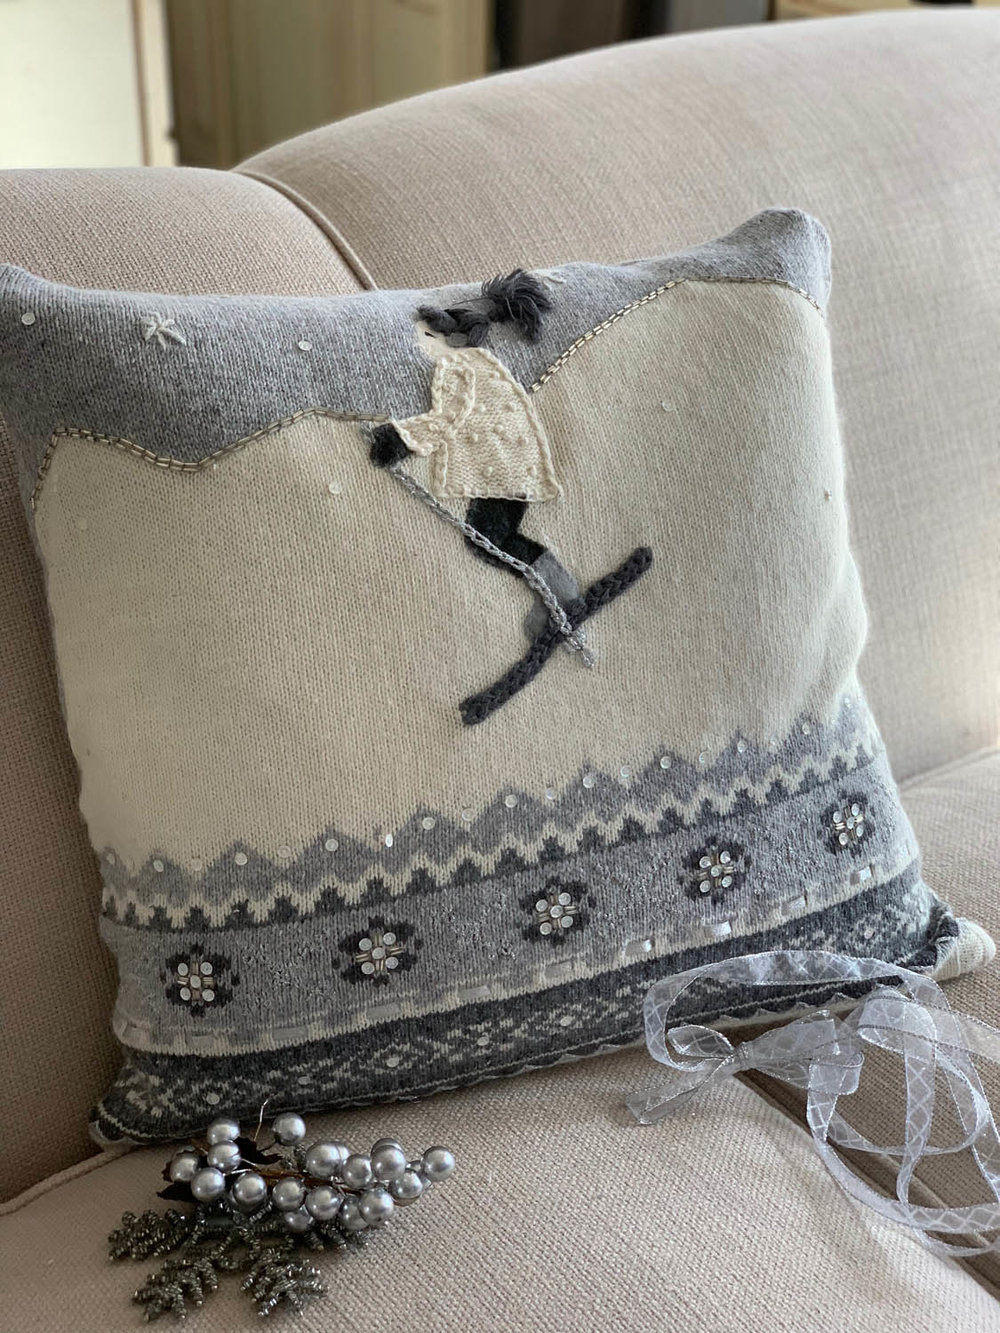 Finished thrift store knitted sweater in white and gray sewn into a holiday pillow.